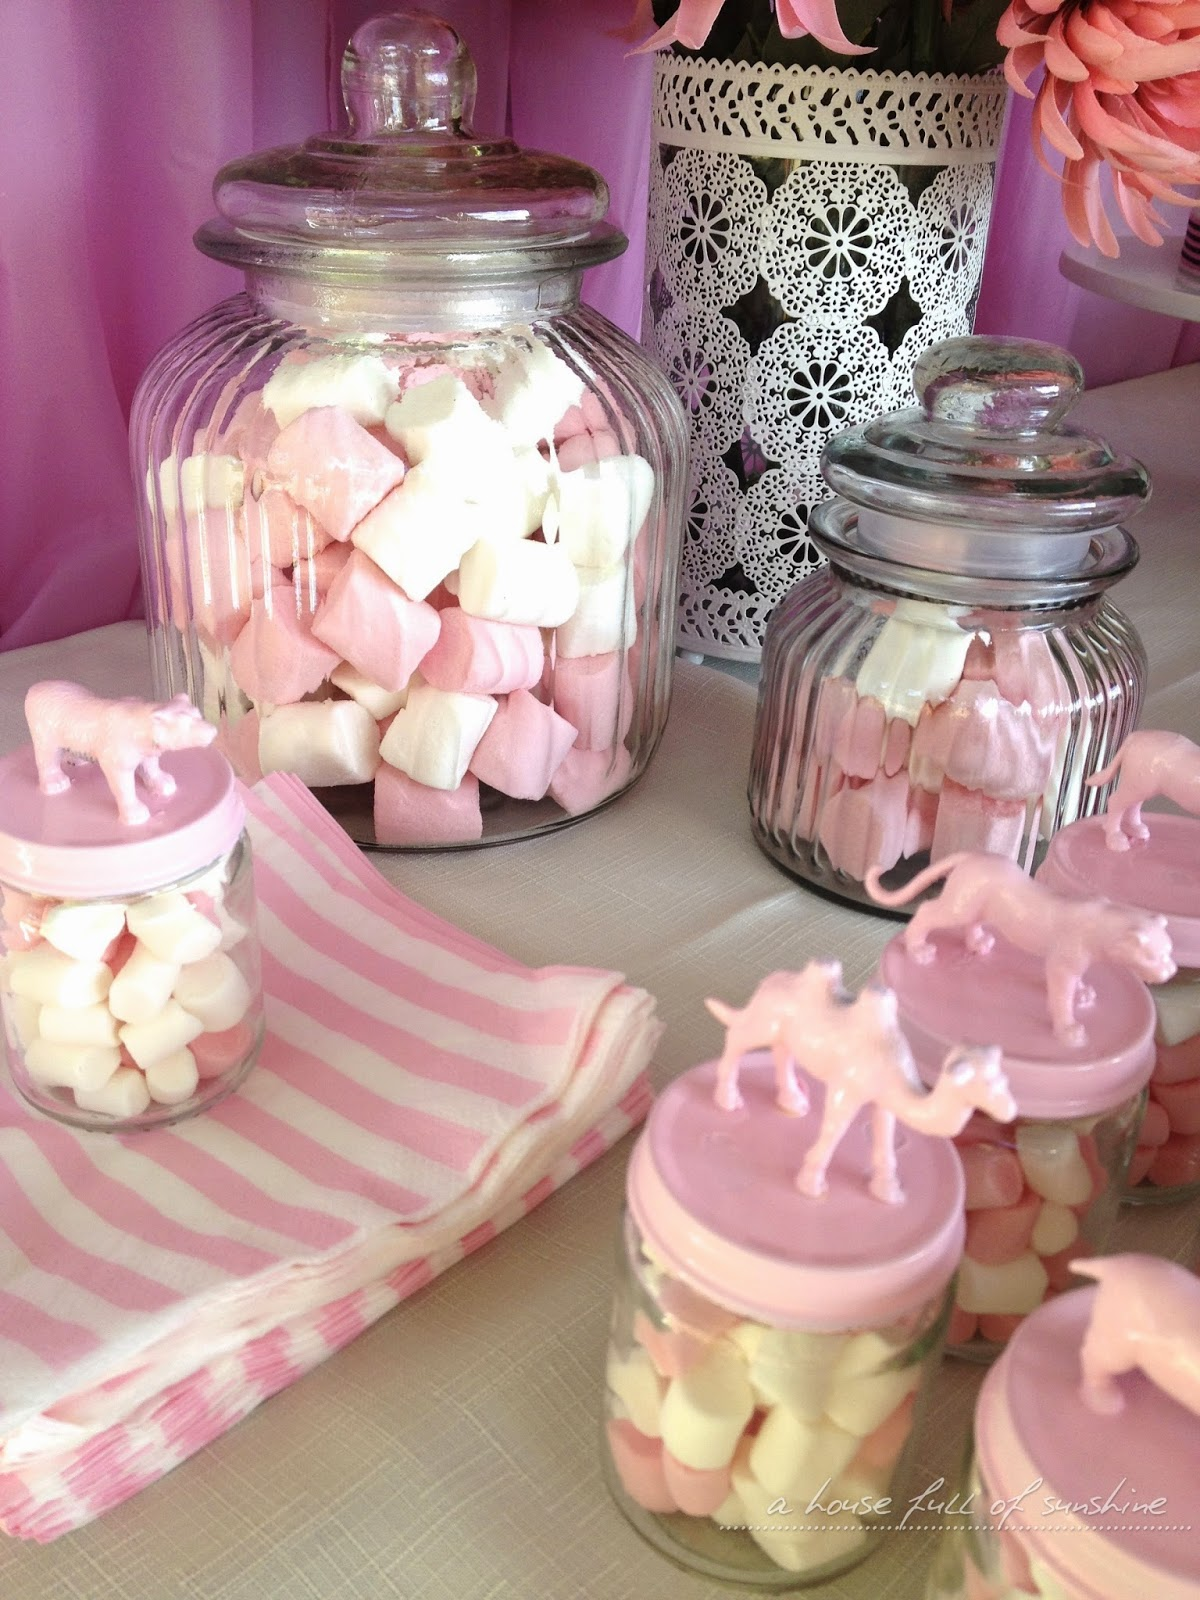 Super cute pink circus party - lots of great ideas here! | A house full of sunshine #birthday #party